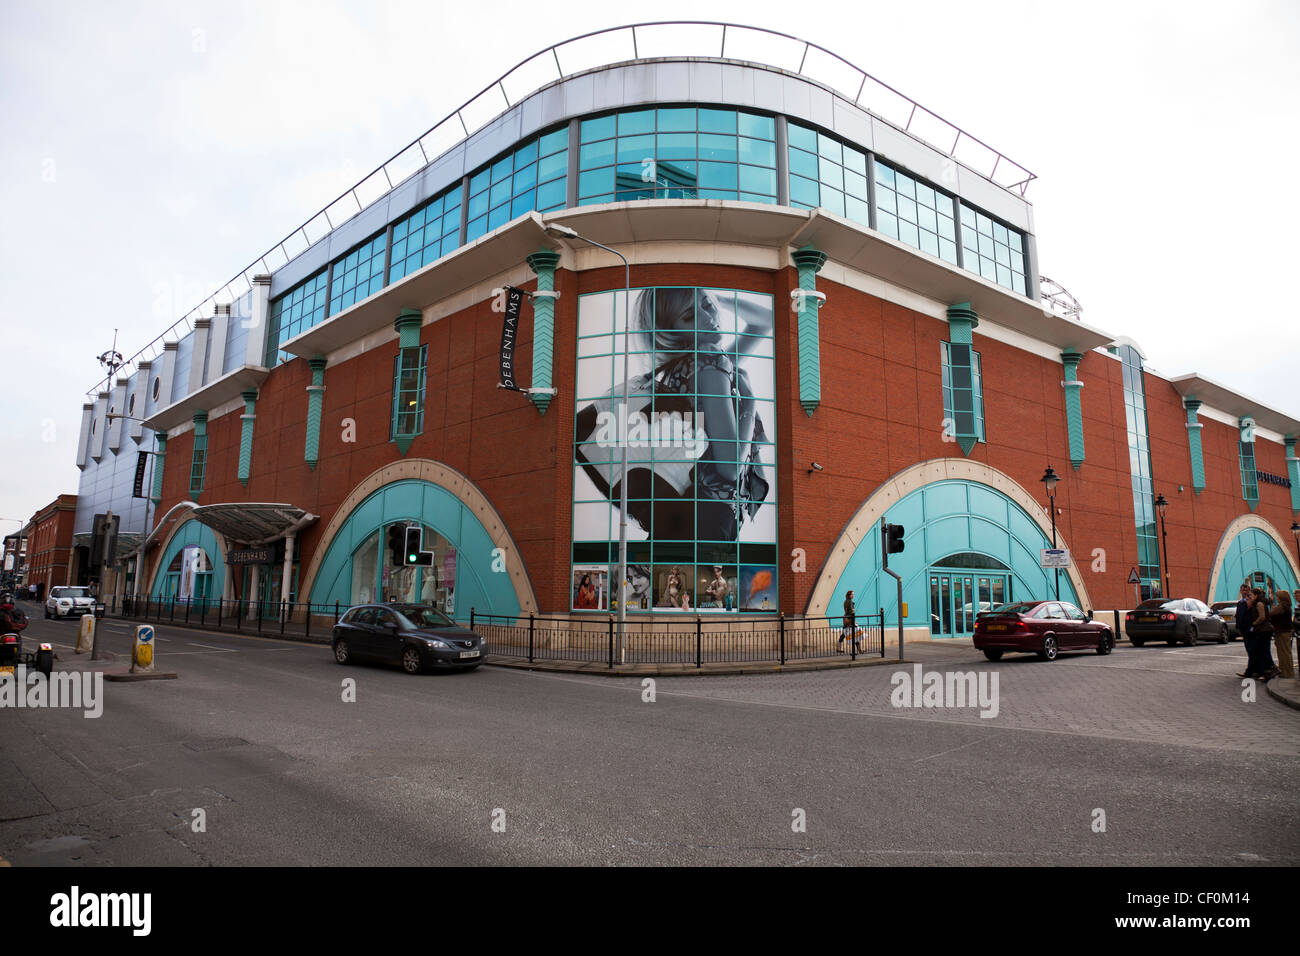 Lincoln city, Lincolnshire, England Debenhams, Department Store based in Lincoln - Stock Image